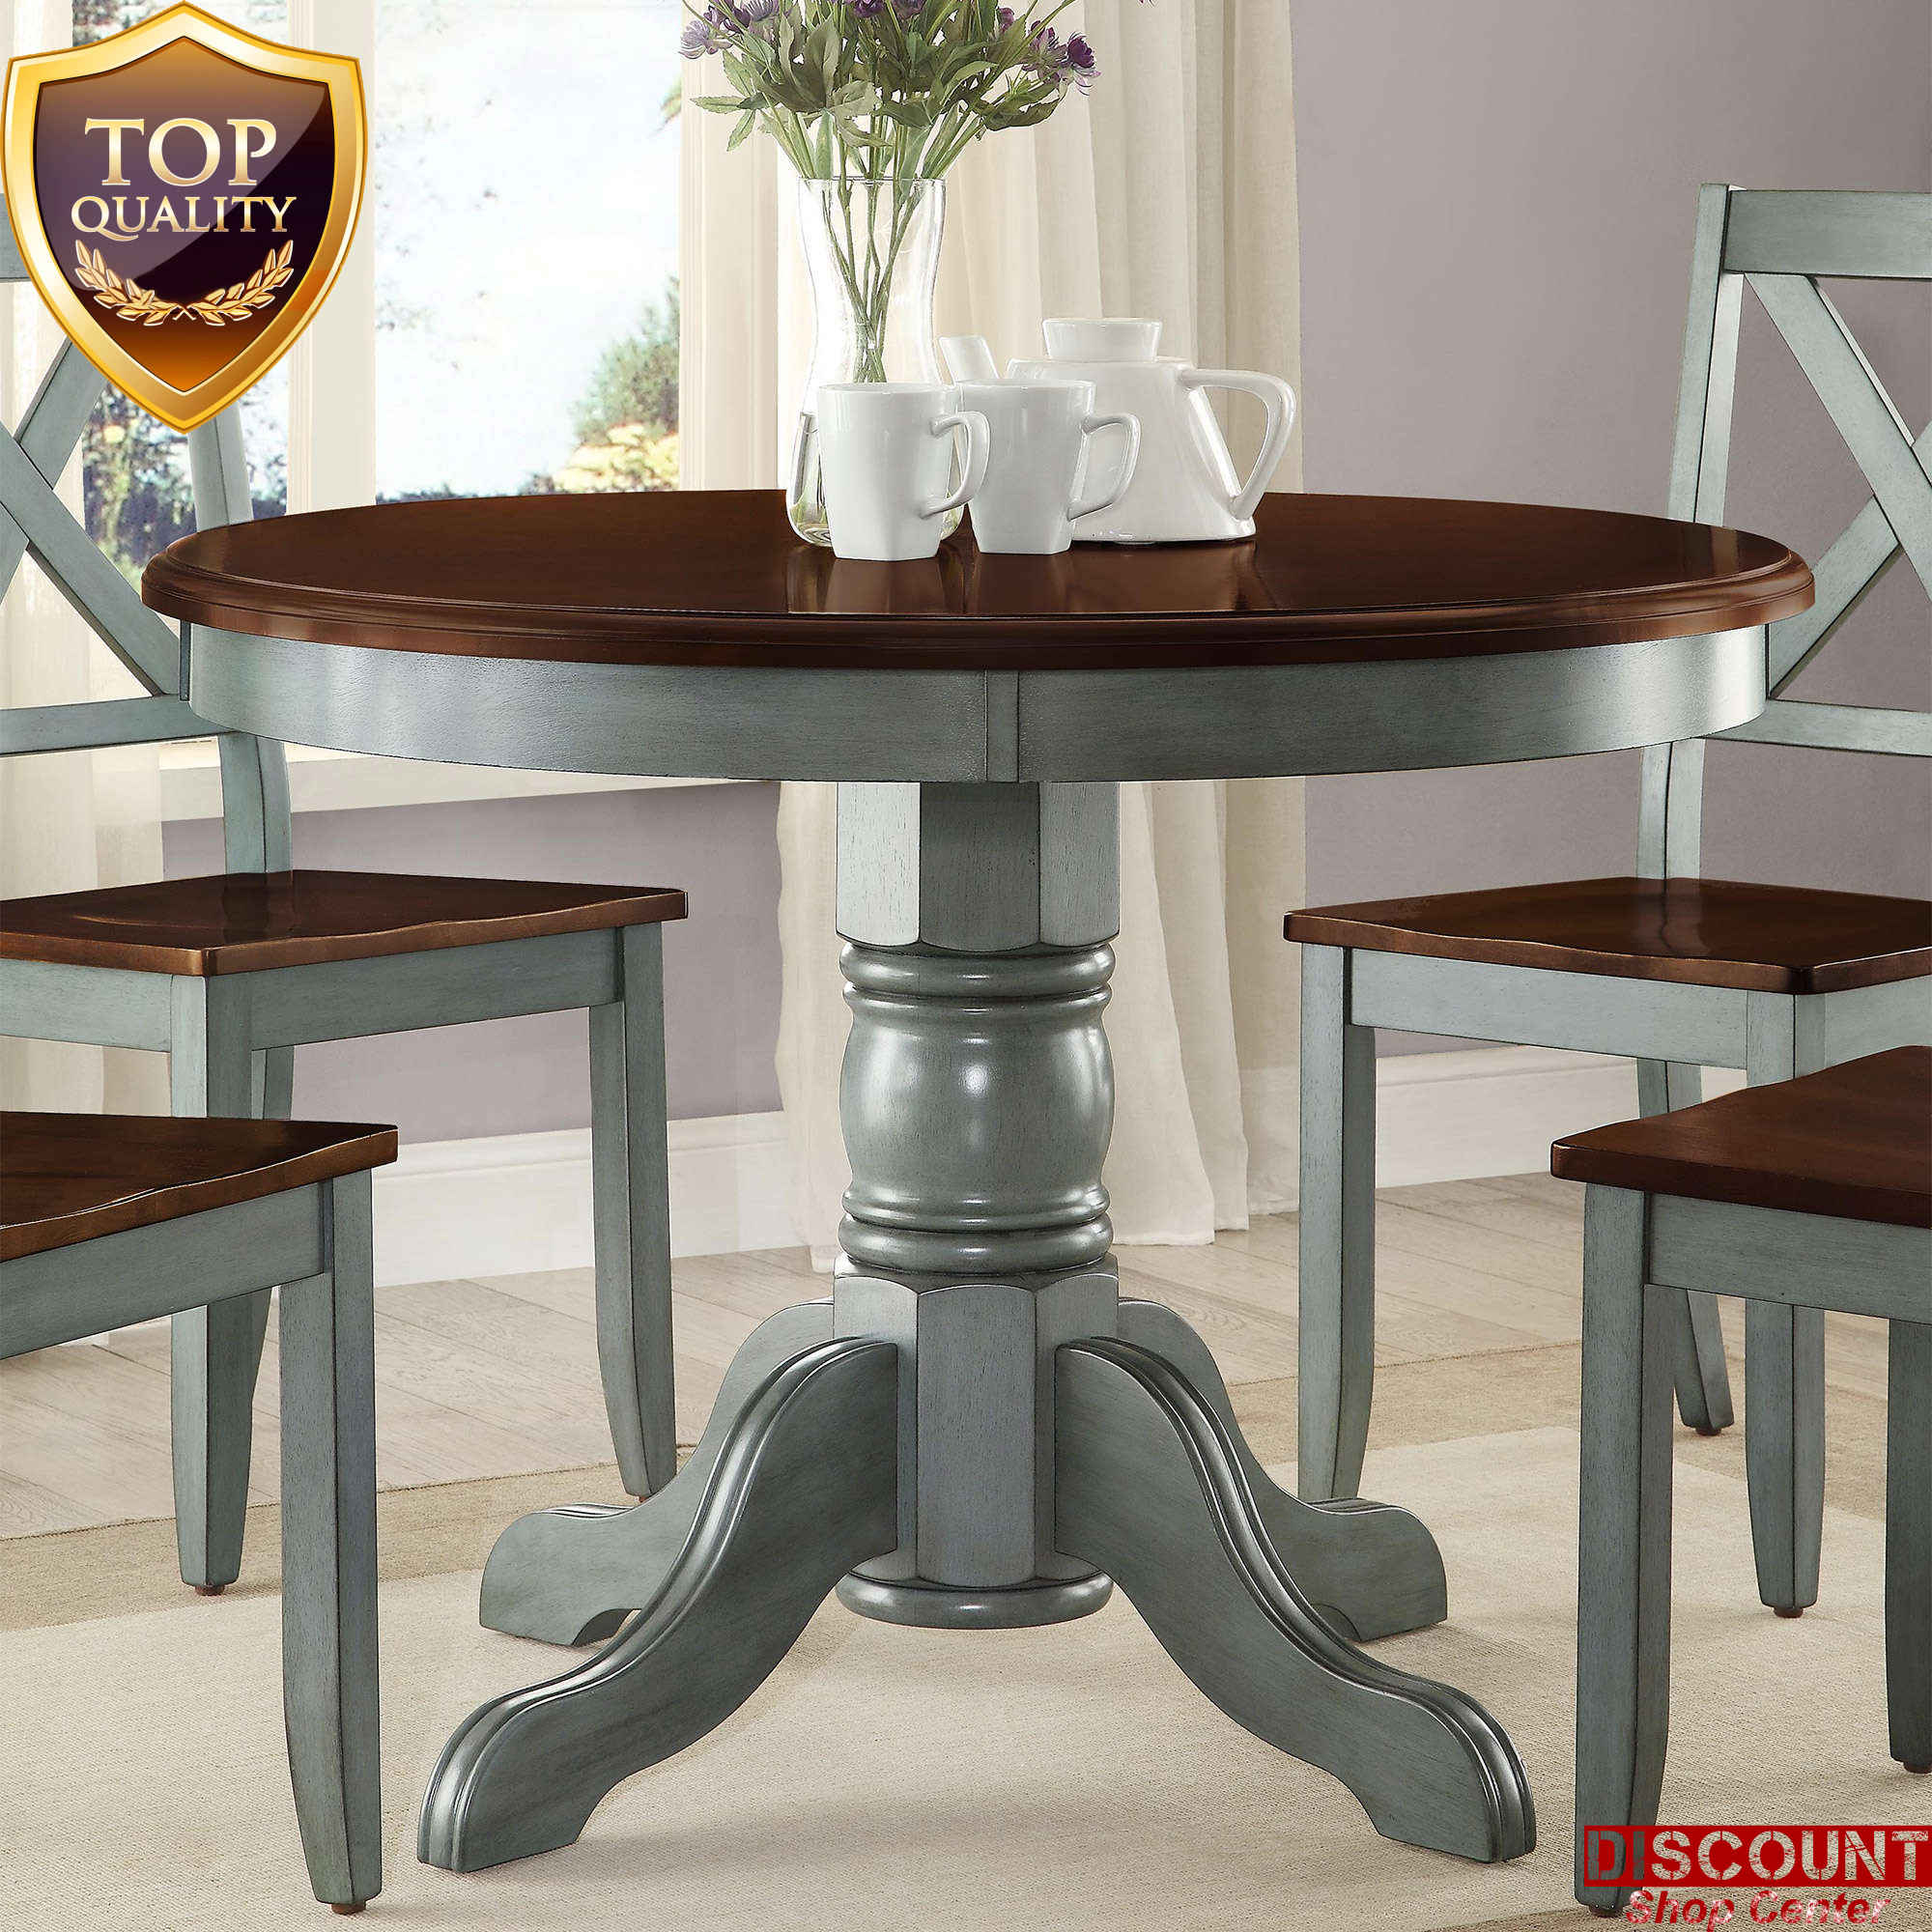 Remarkable Expandable Round Dining Table Spin Room Furniture For Most Recently Released Modern Farmhouse Extending Dining Tables (View 24 of 25)